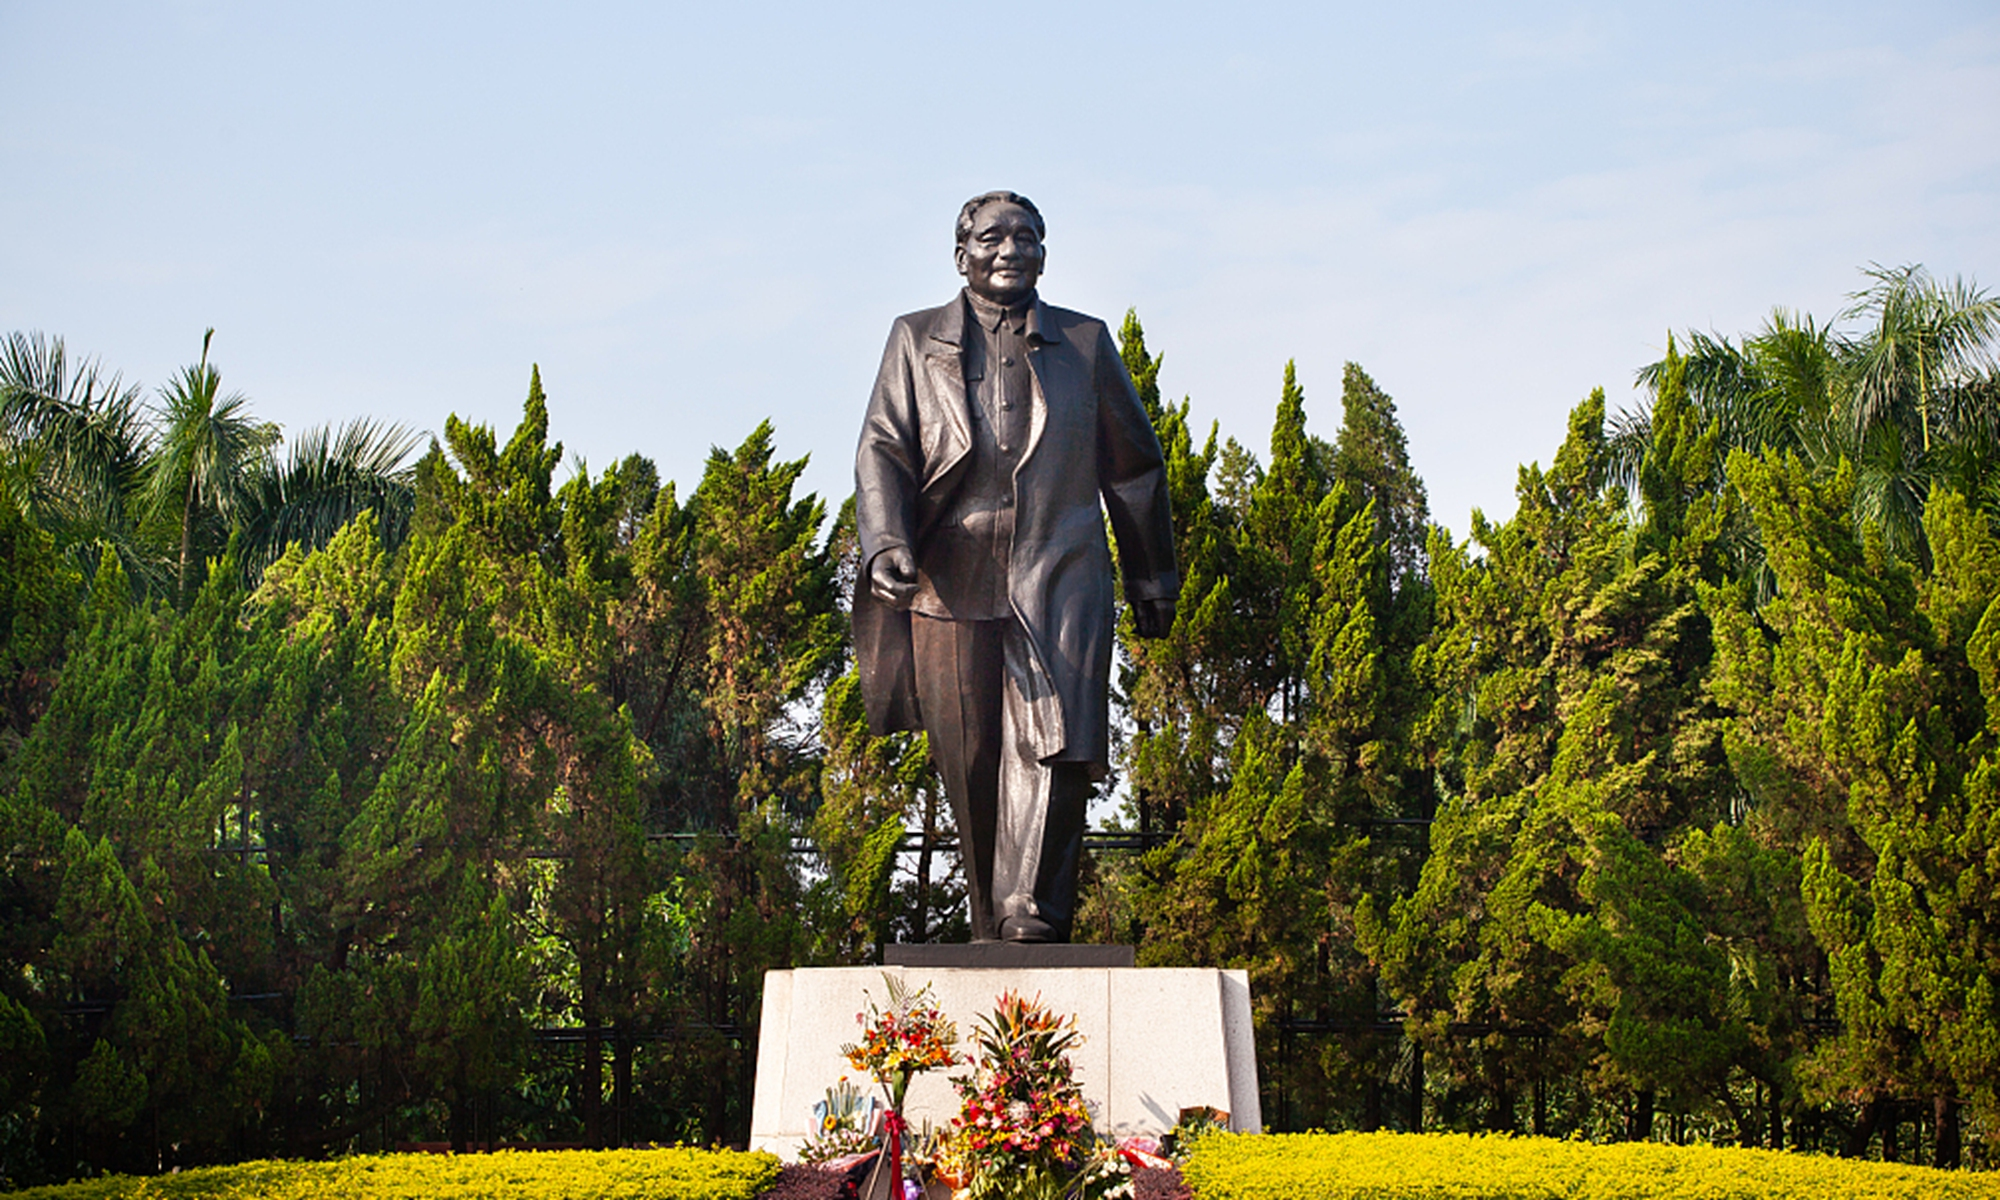 Xi presents flowers to statue of Deng Xiaoping in Shenzhen